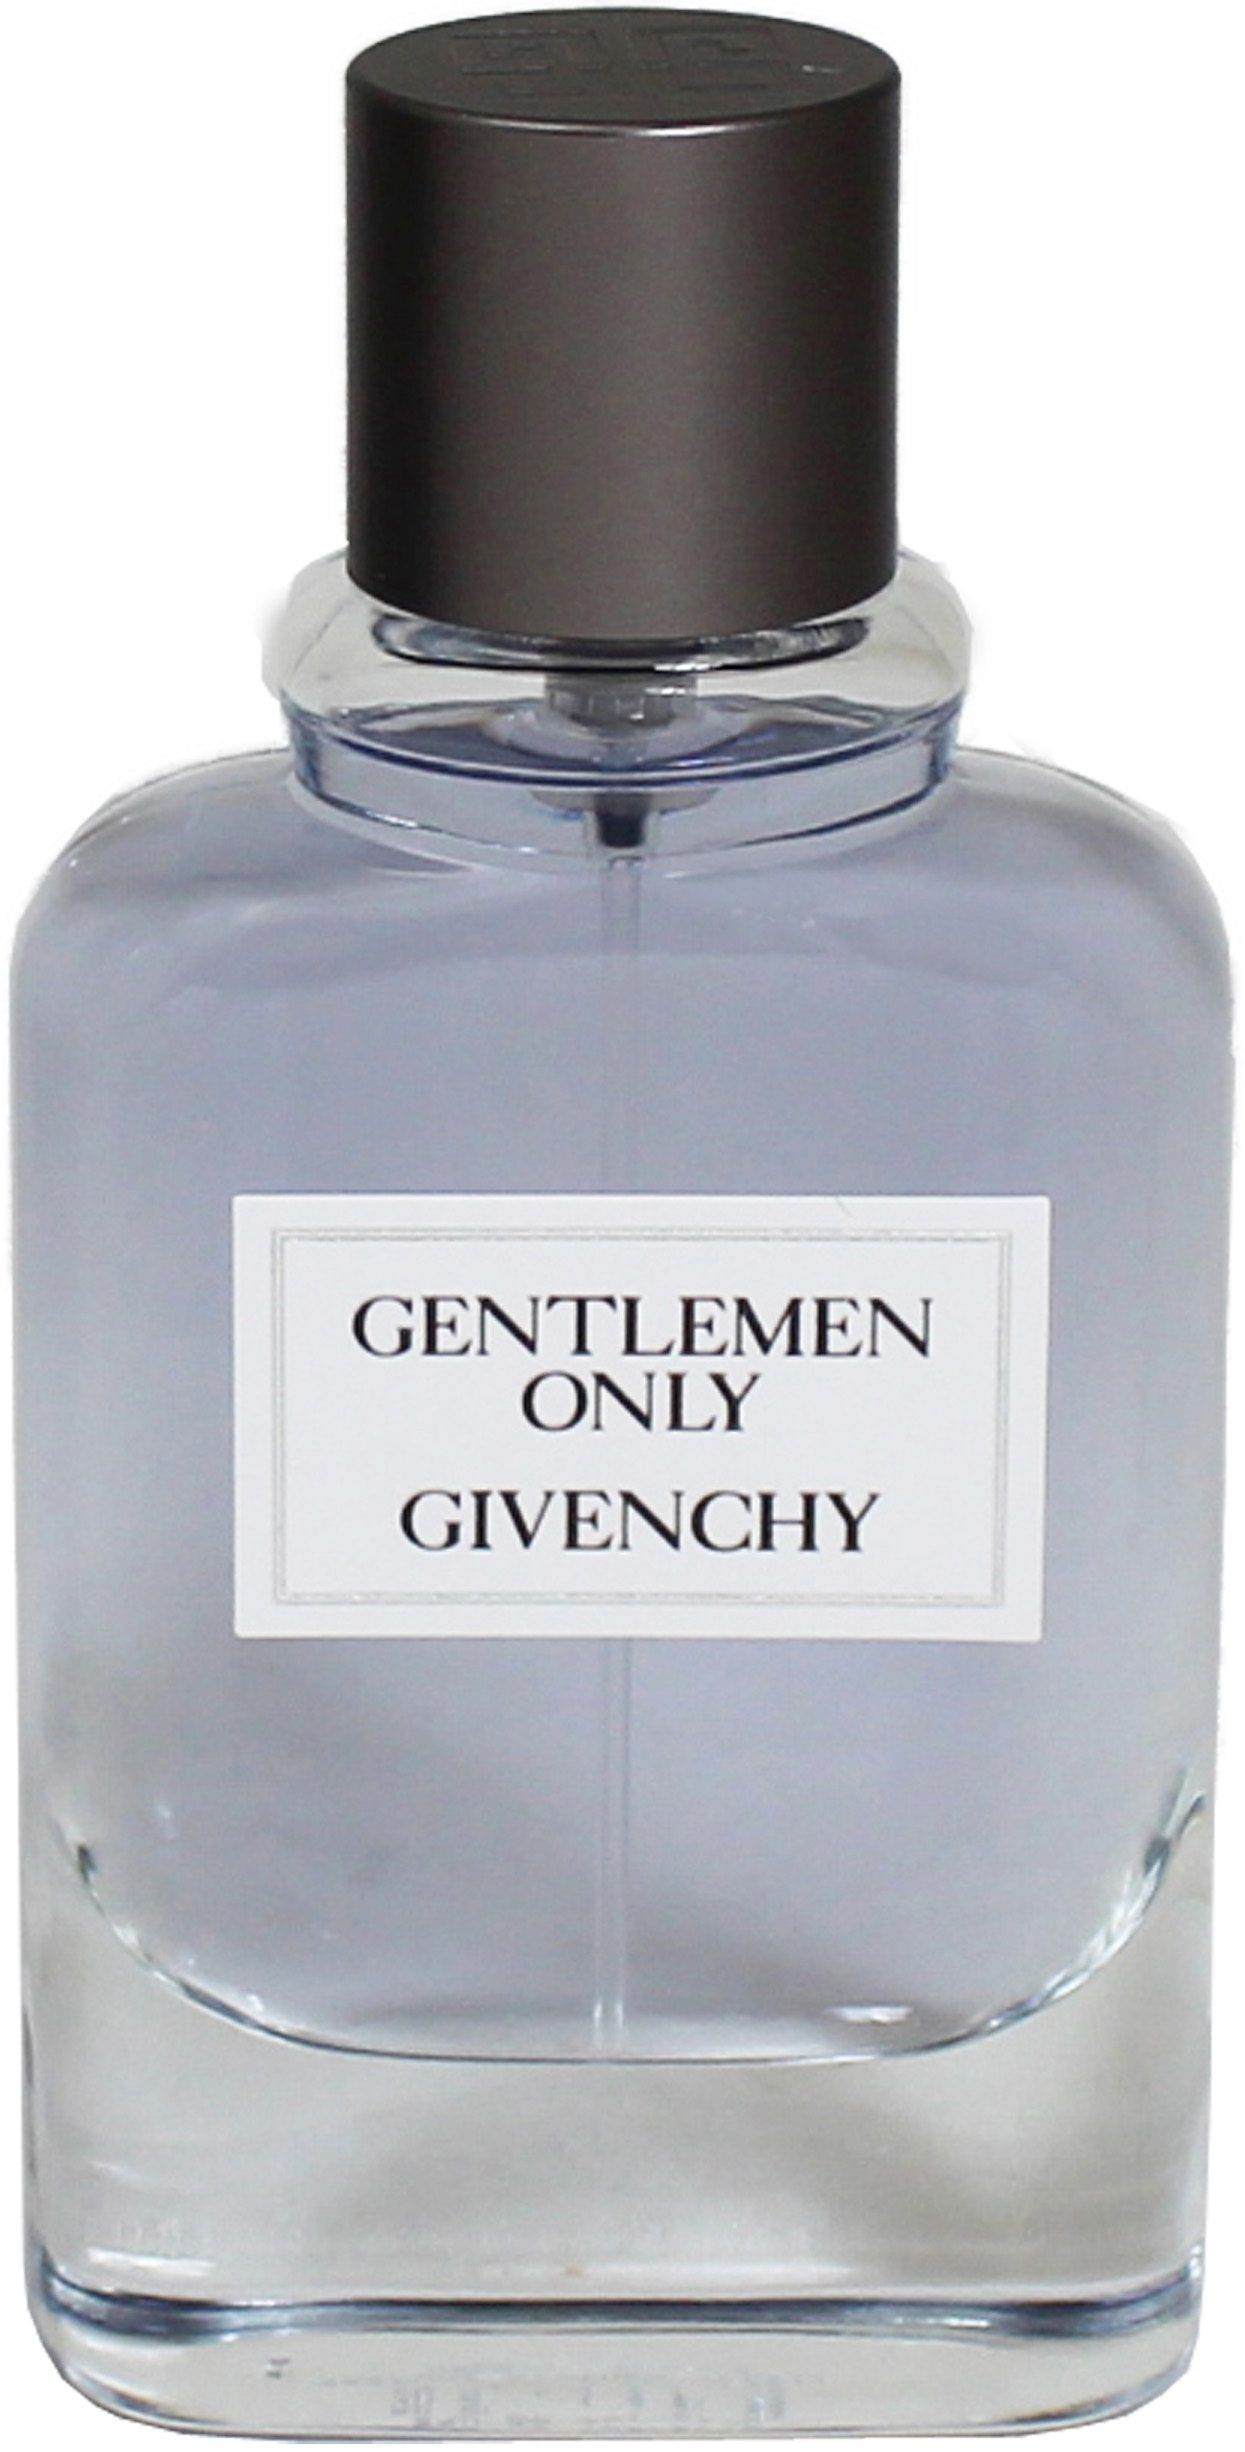 Givenchy, »Gentleman Only«, Eau de Toilette